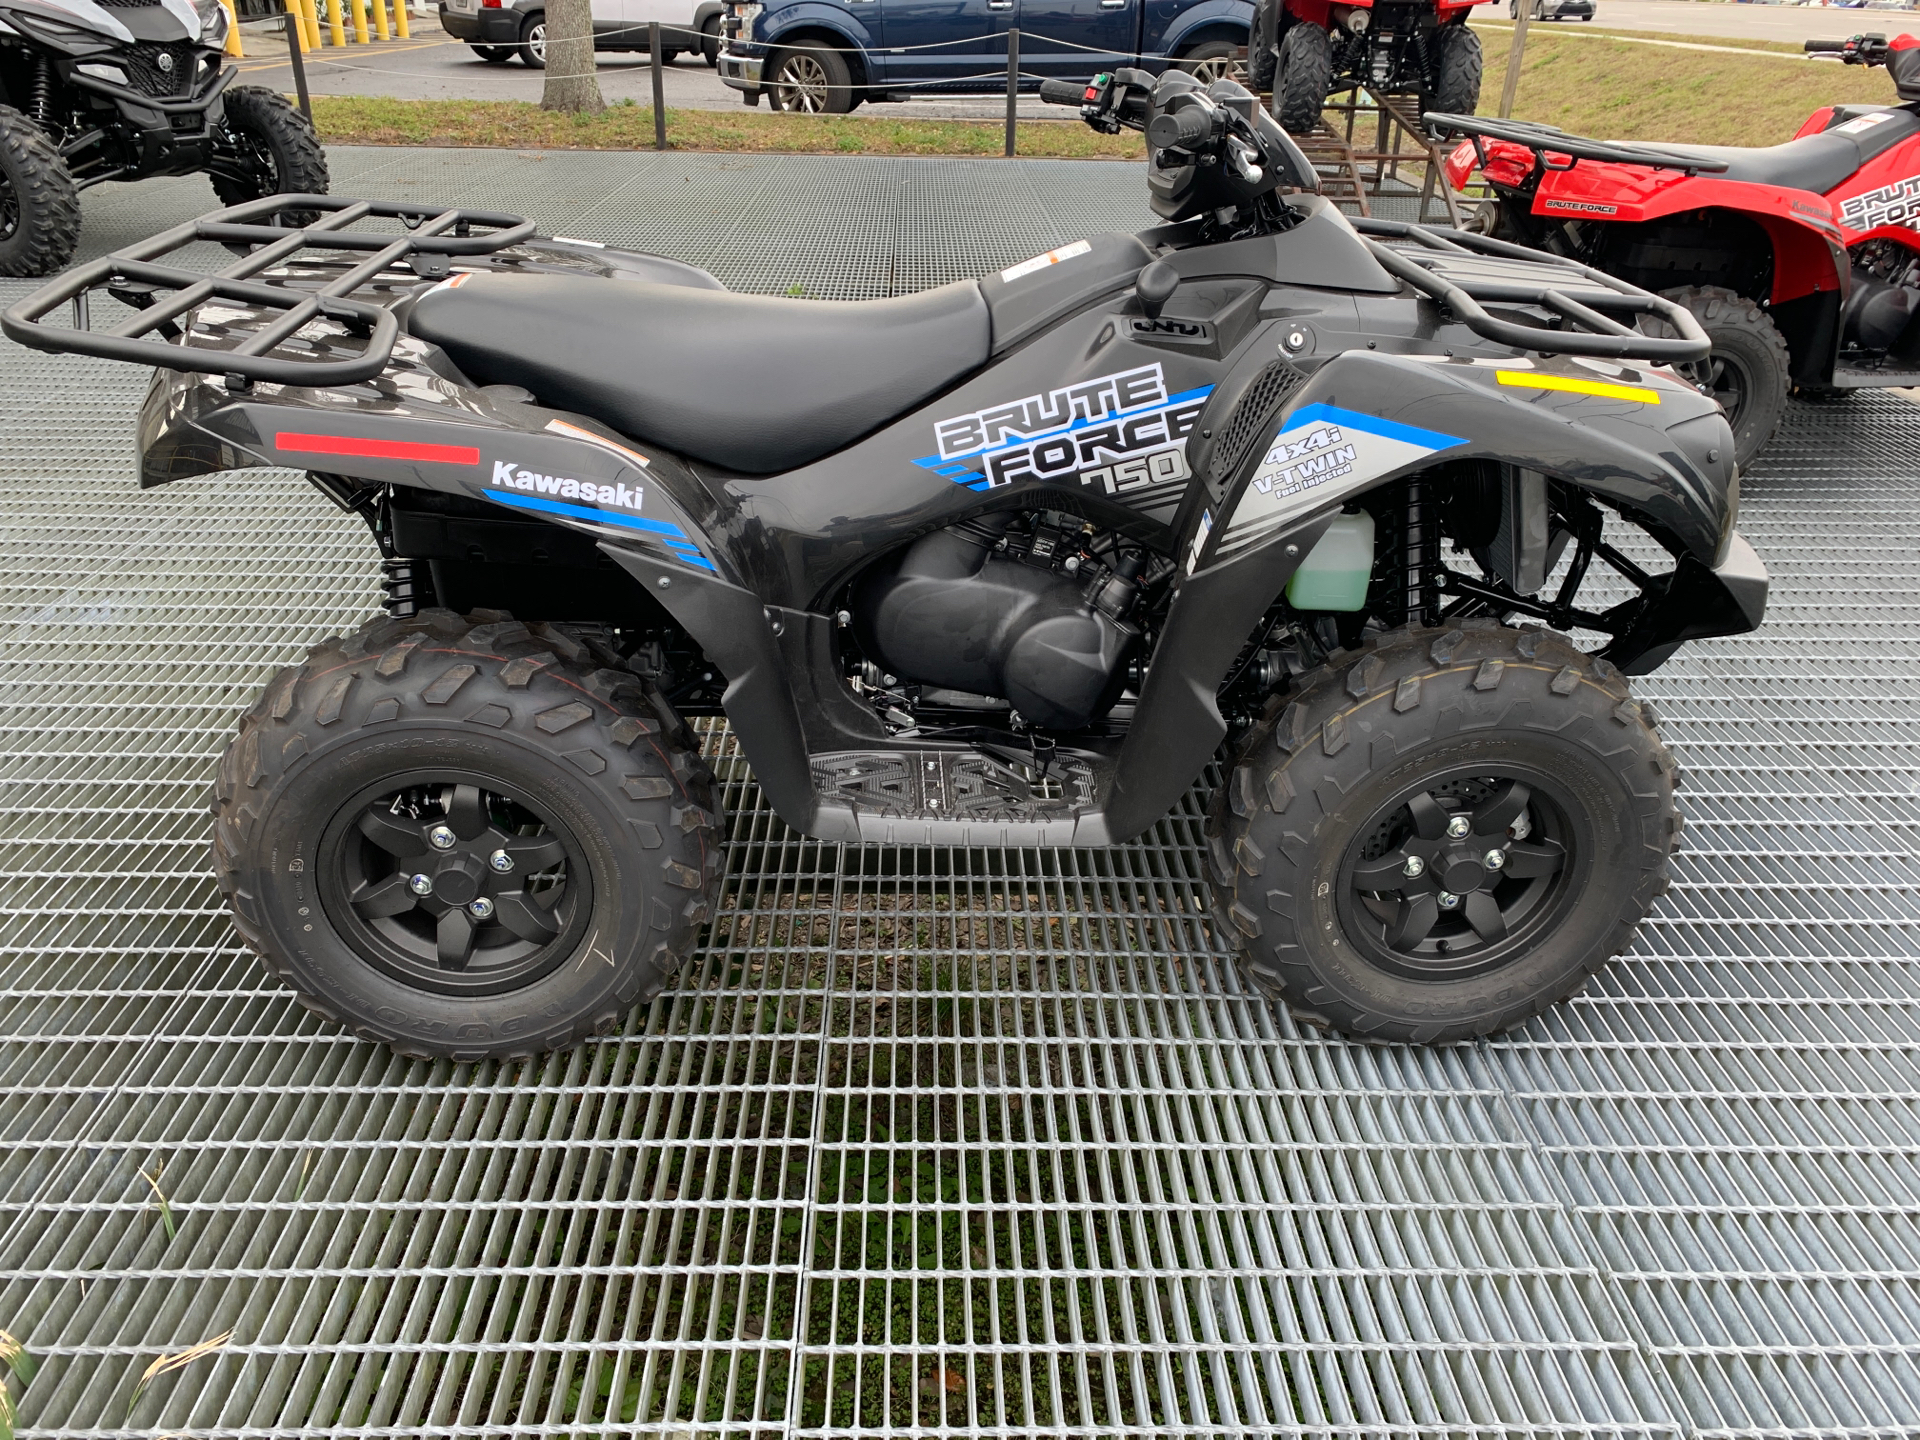 2021 Kawasaki Brute Force 750 4x4i EPS in Orlando, Florida - Photo 3